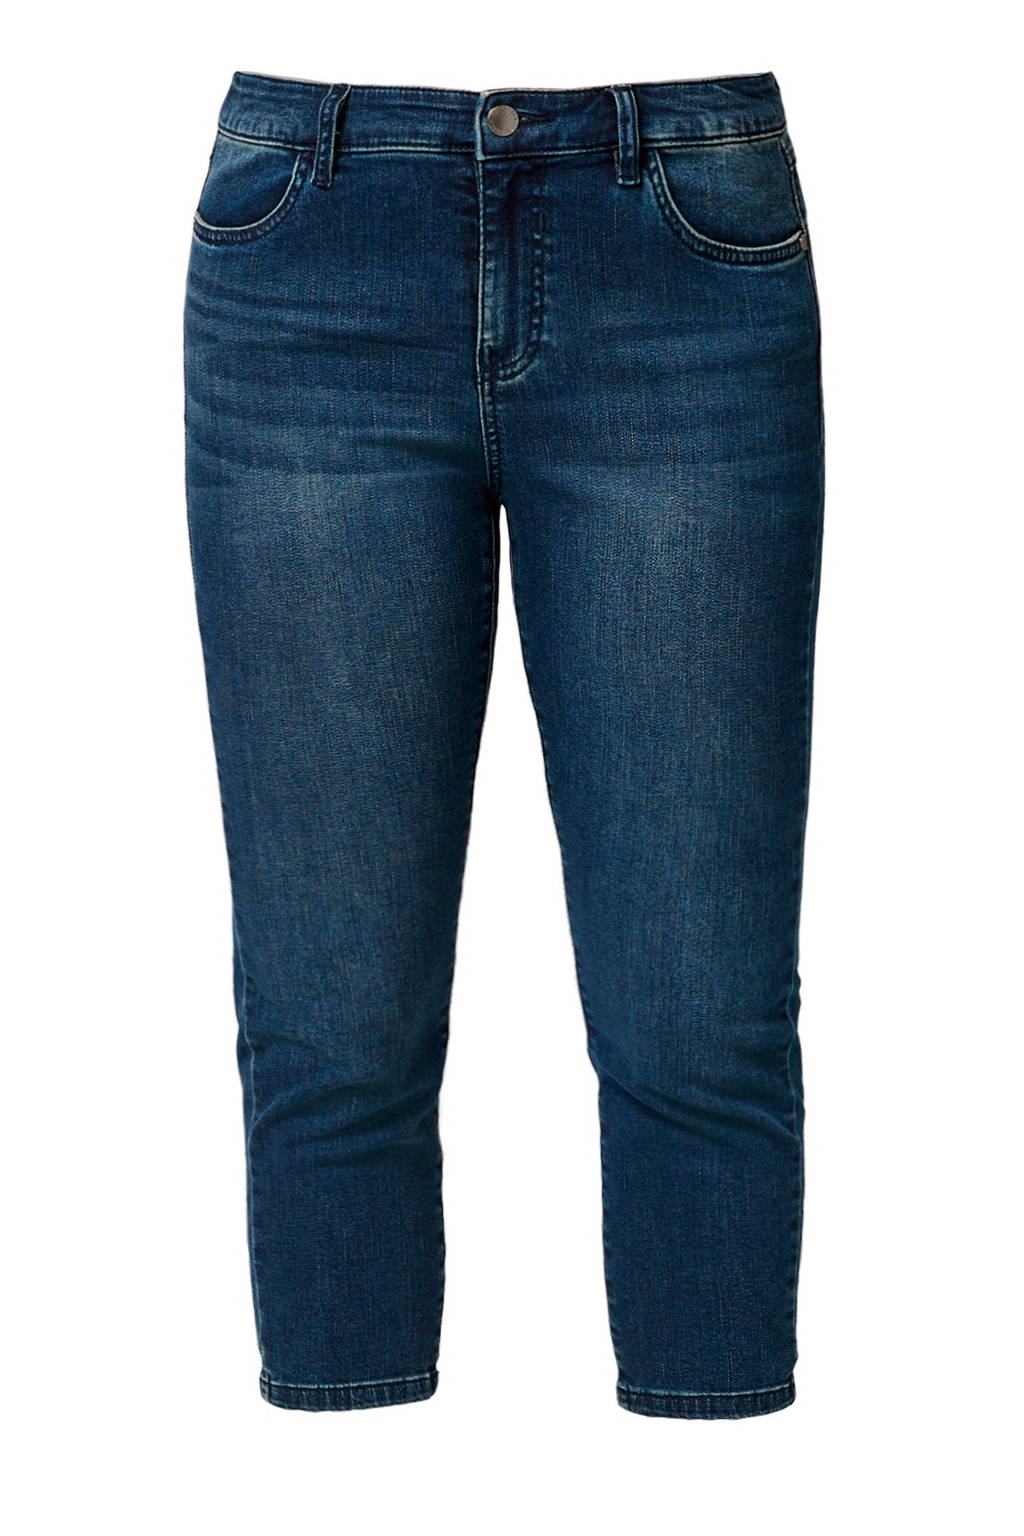 TRIANGLE cropped high waist slim fit jeans blauw, Blauw